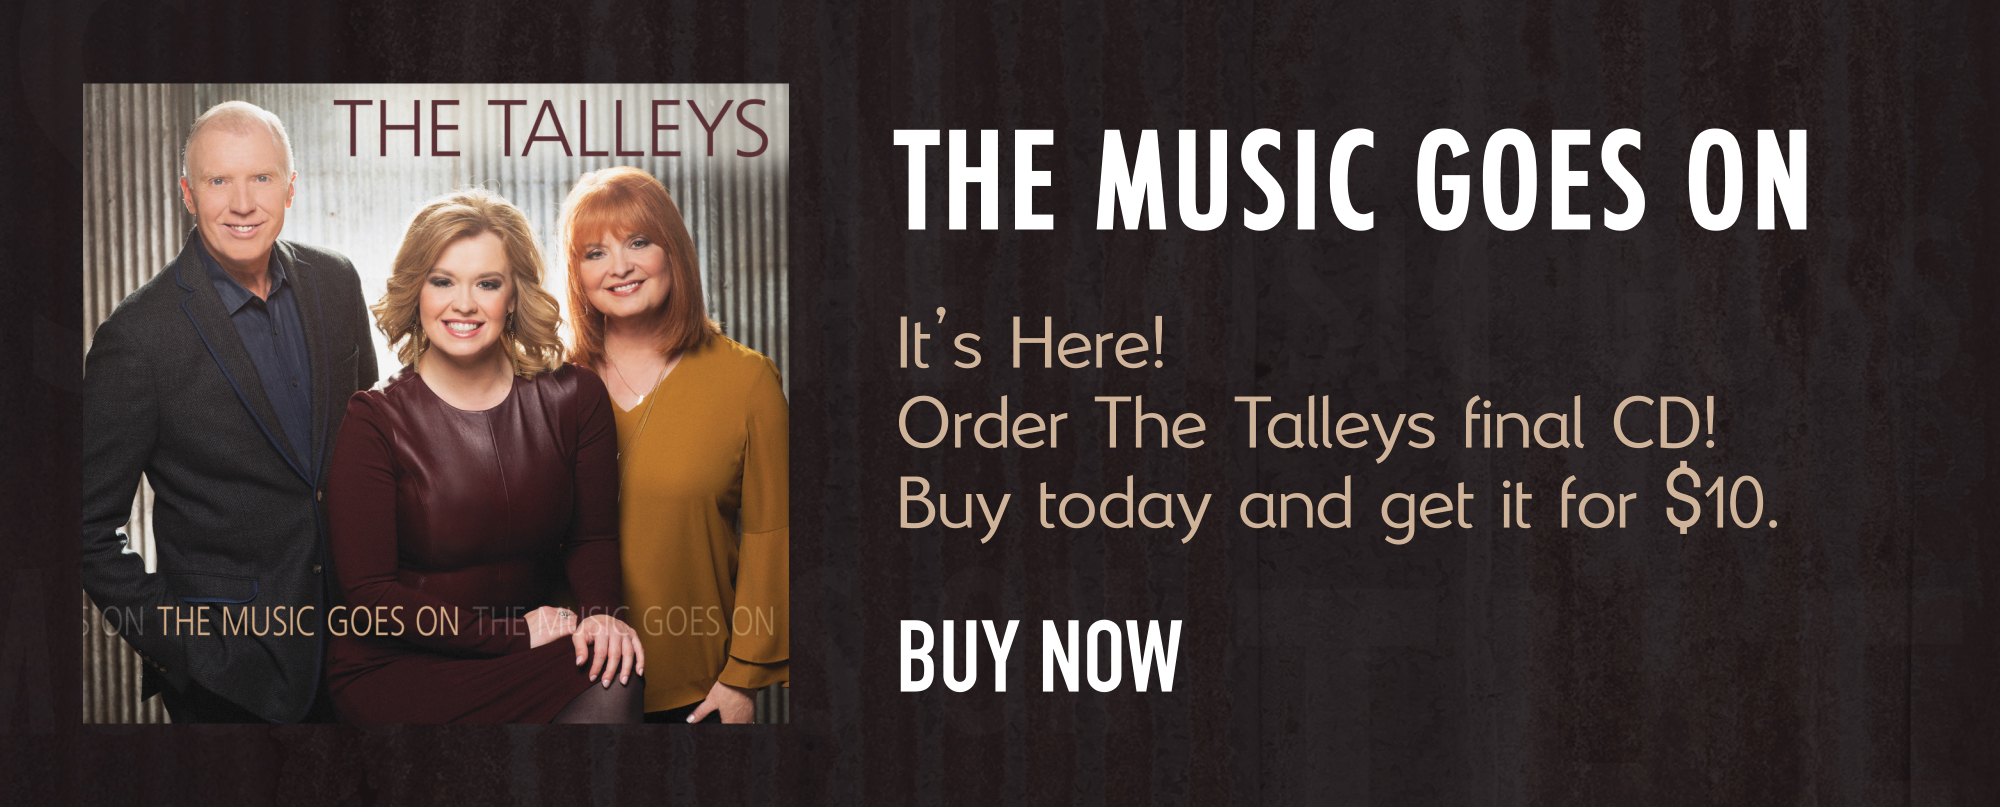 Order The Music Goes Of From The Talleys